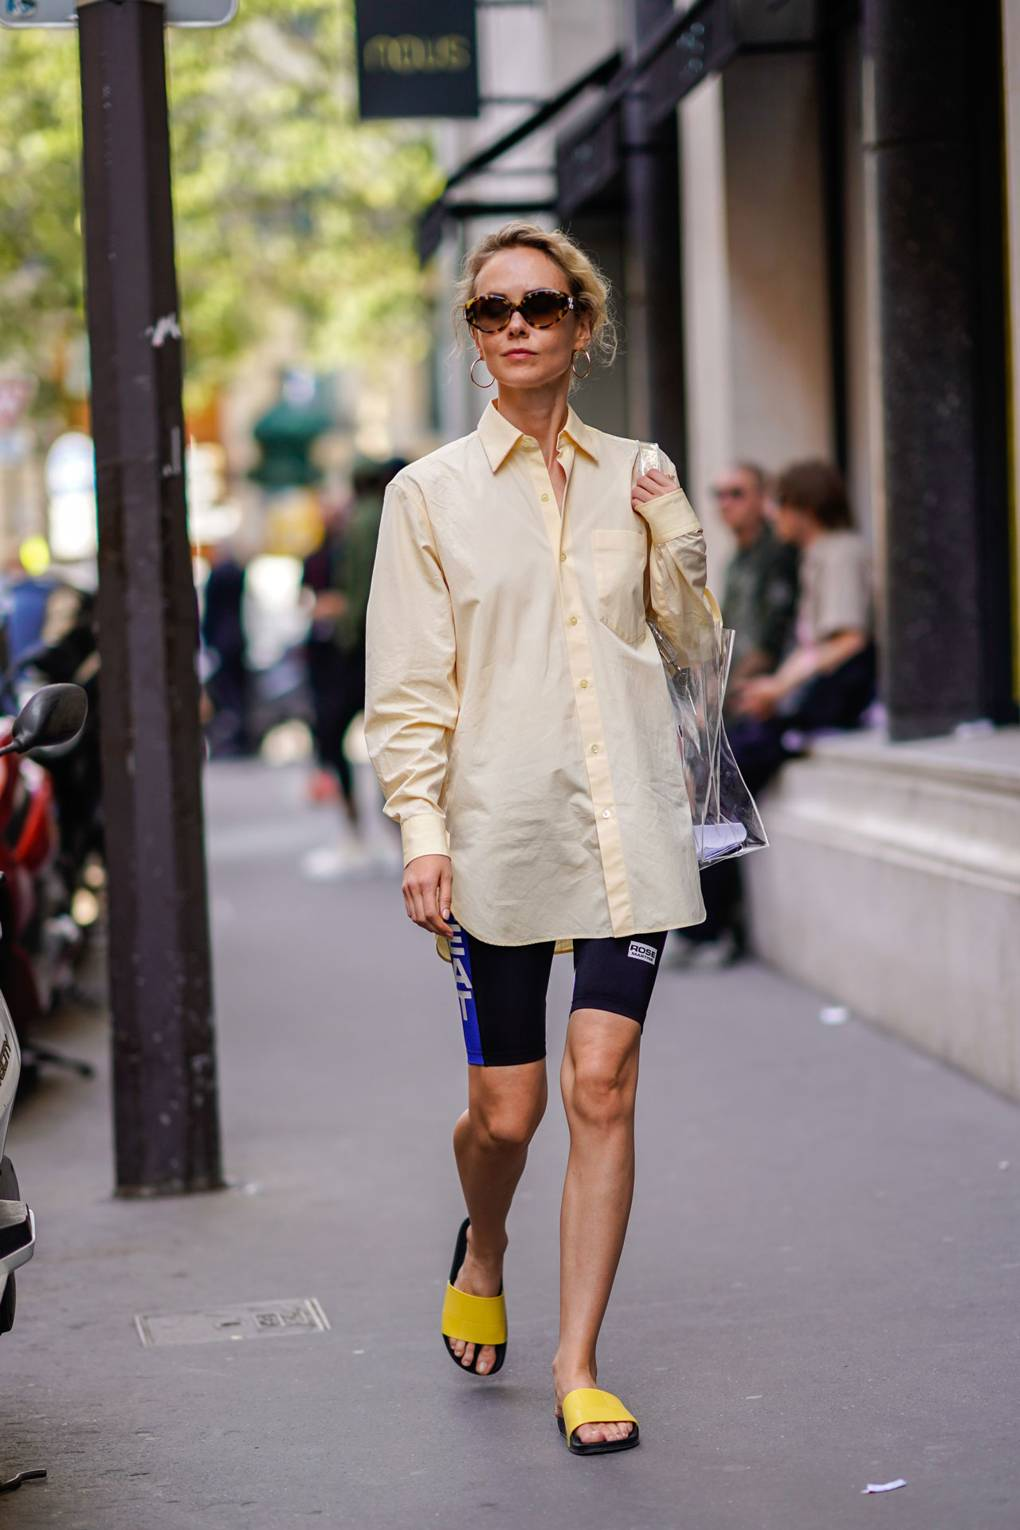 441e80c8a588 How To Wear The Cycling Shorts Trend